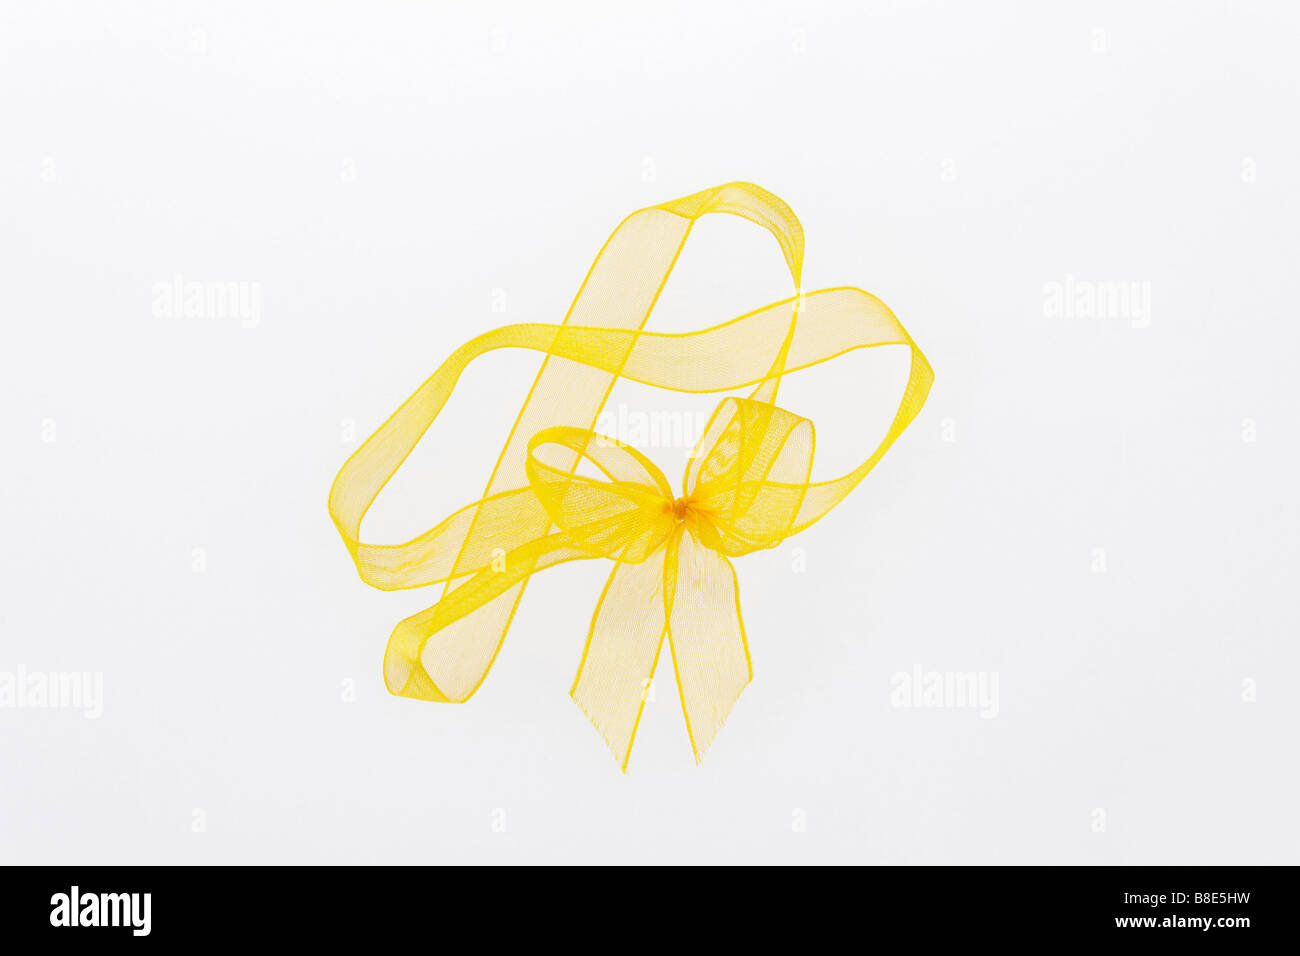 Image de clip yellow ribbon and bow Photo Stock